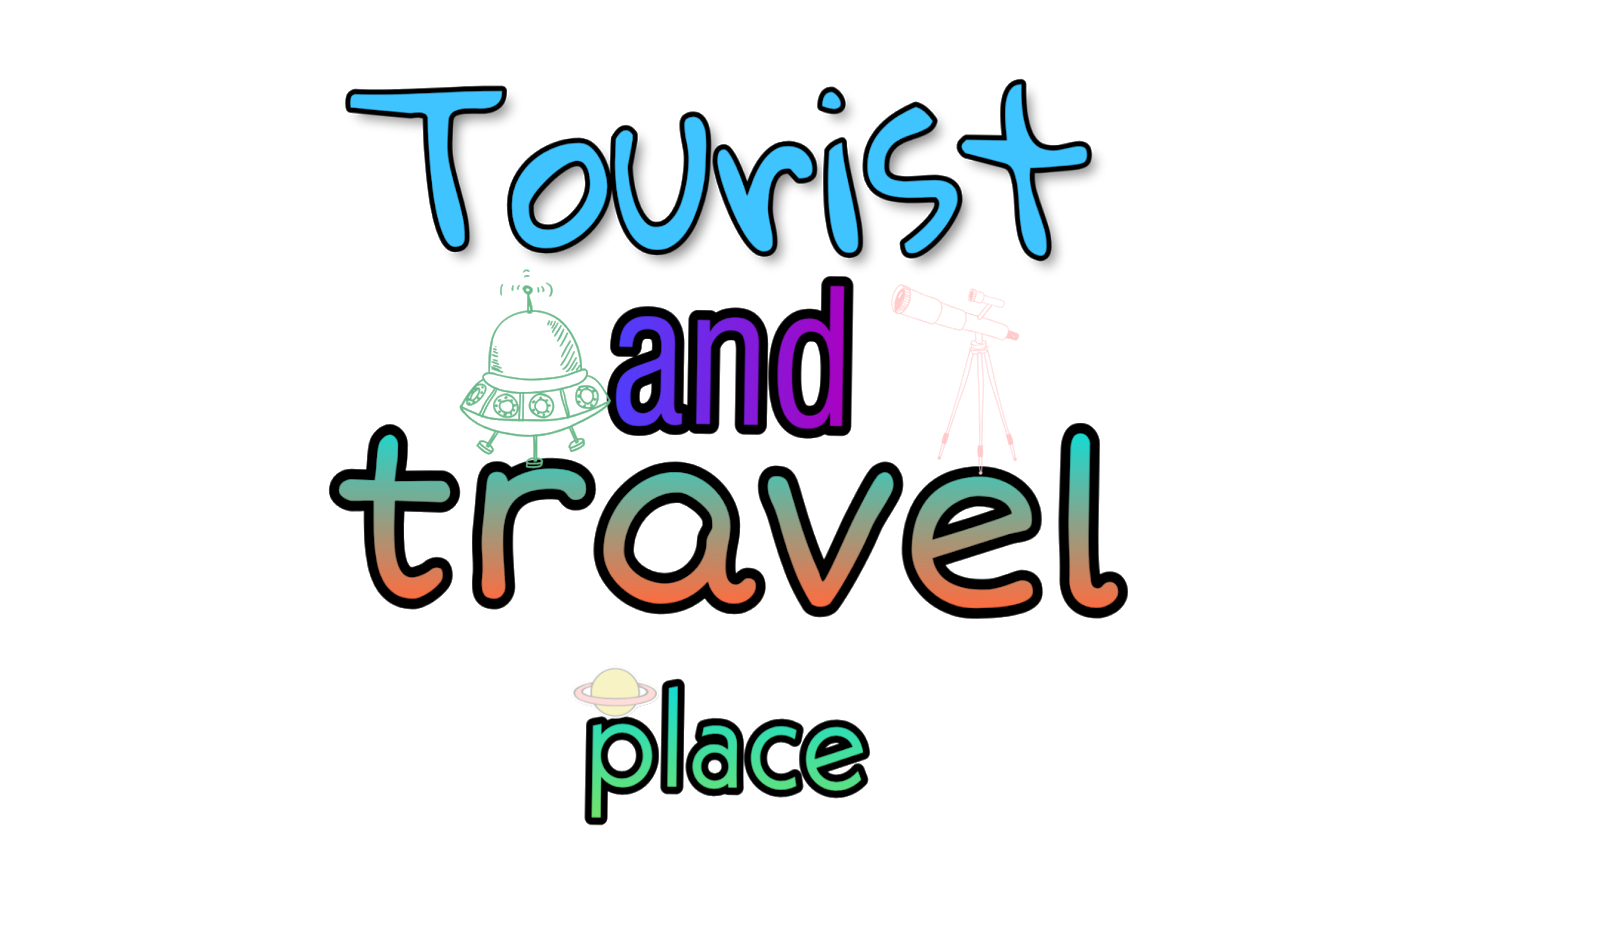 Tourist and travel place